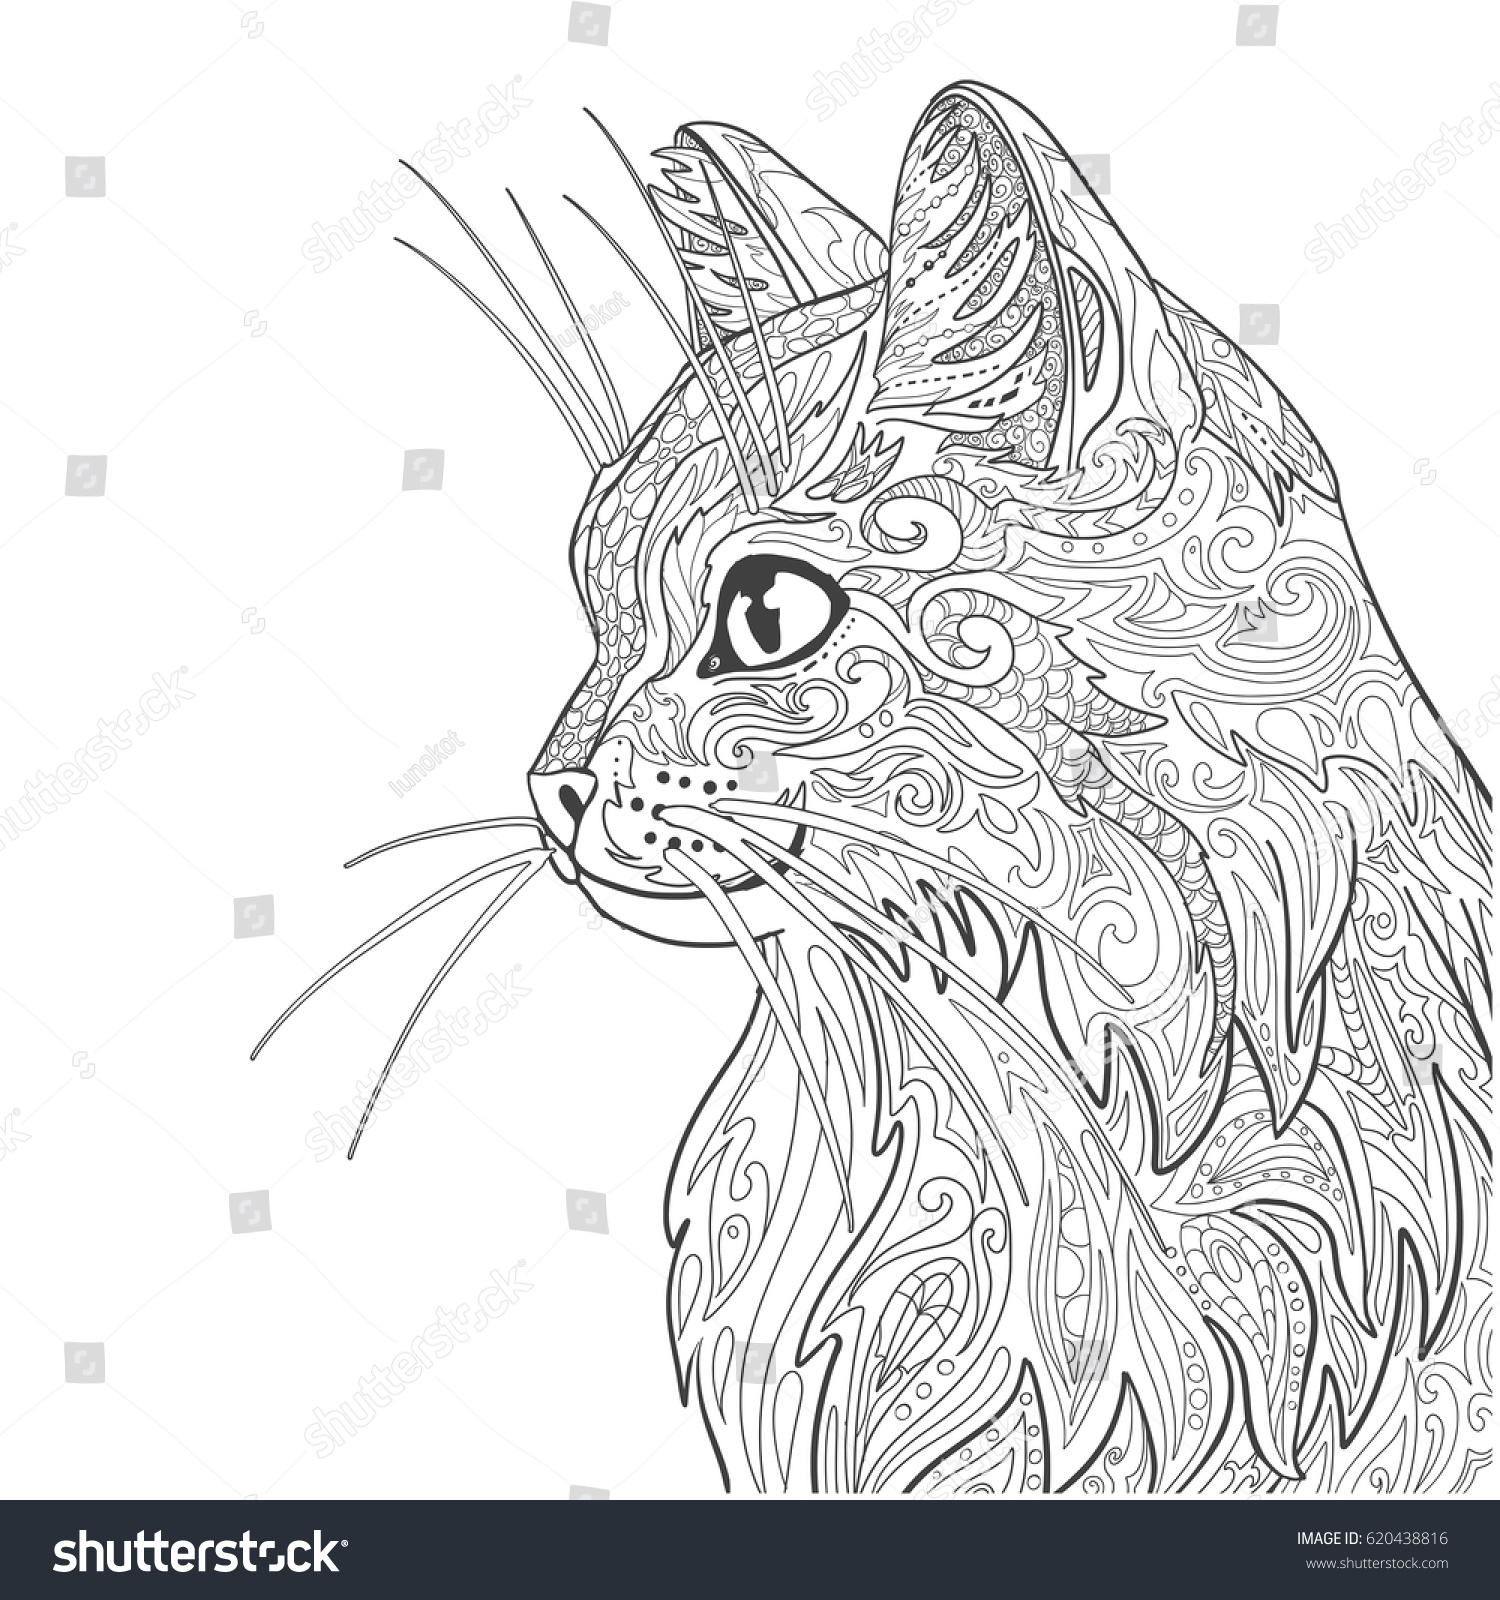 Cat Coloring Book Page Decorative Doodle Isolated On White